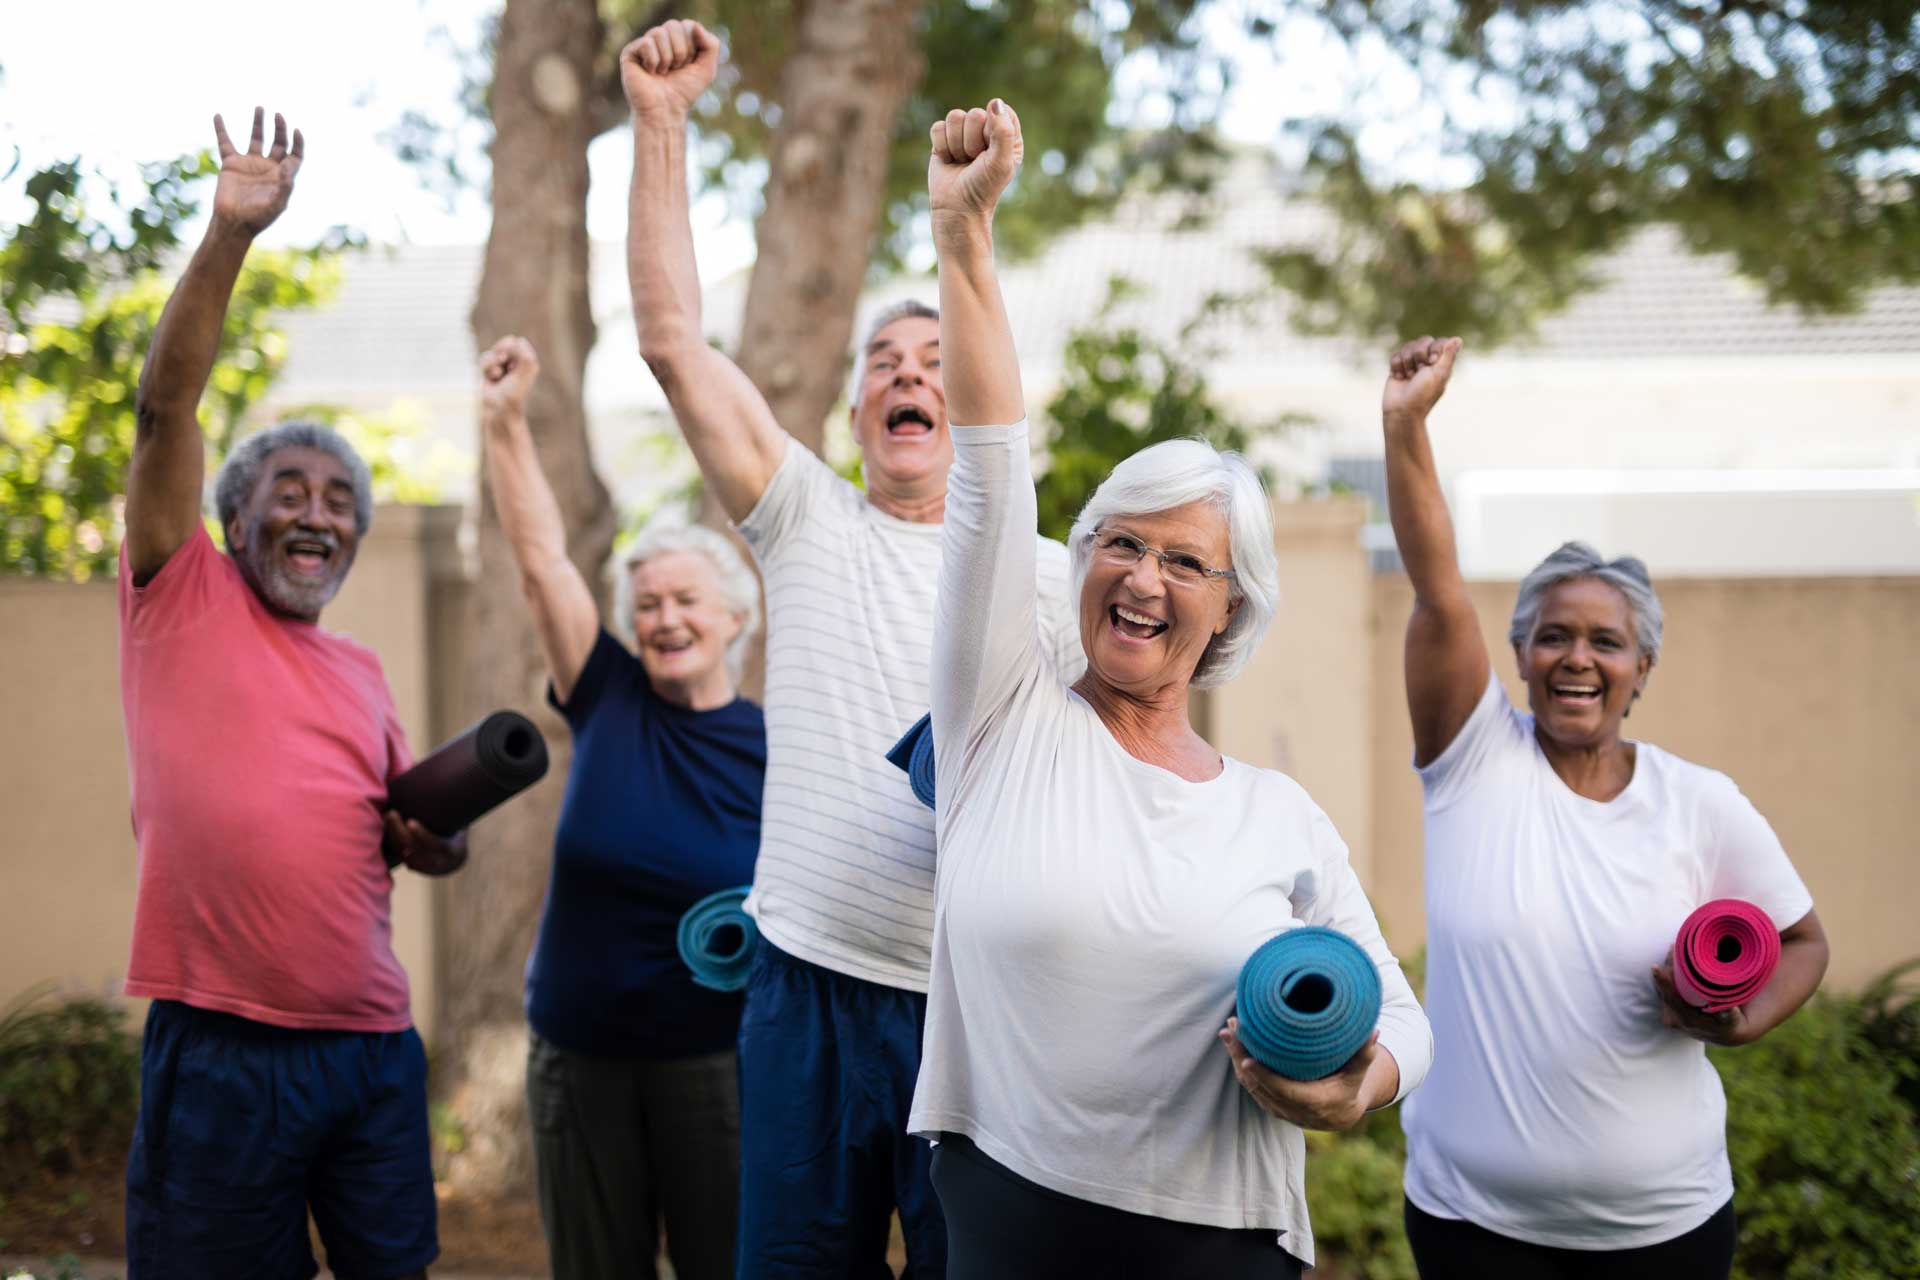 Cheerful seniors with exercise mats at park